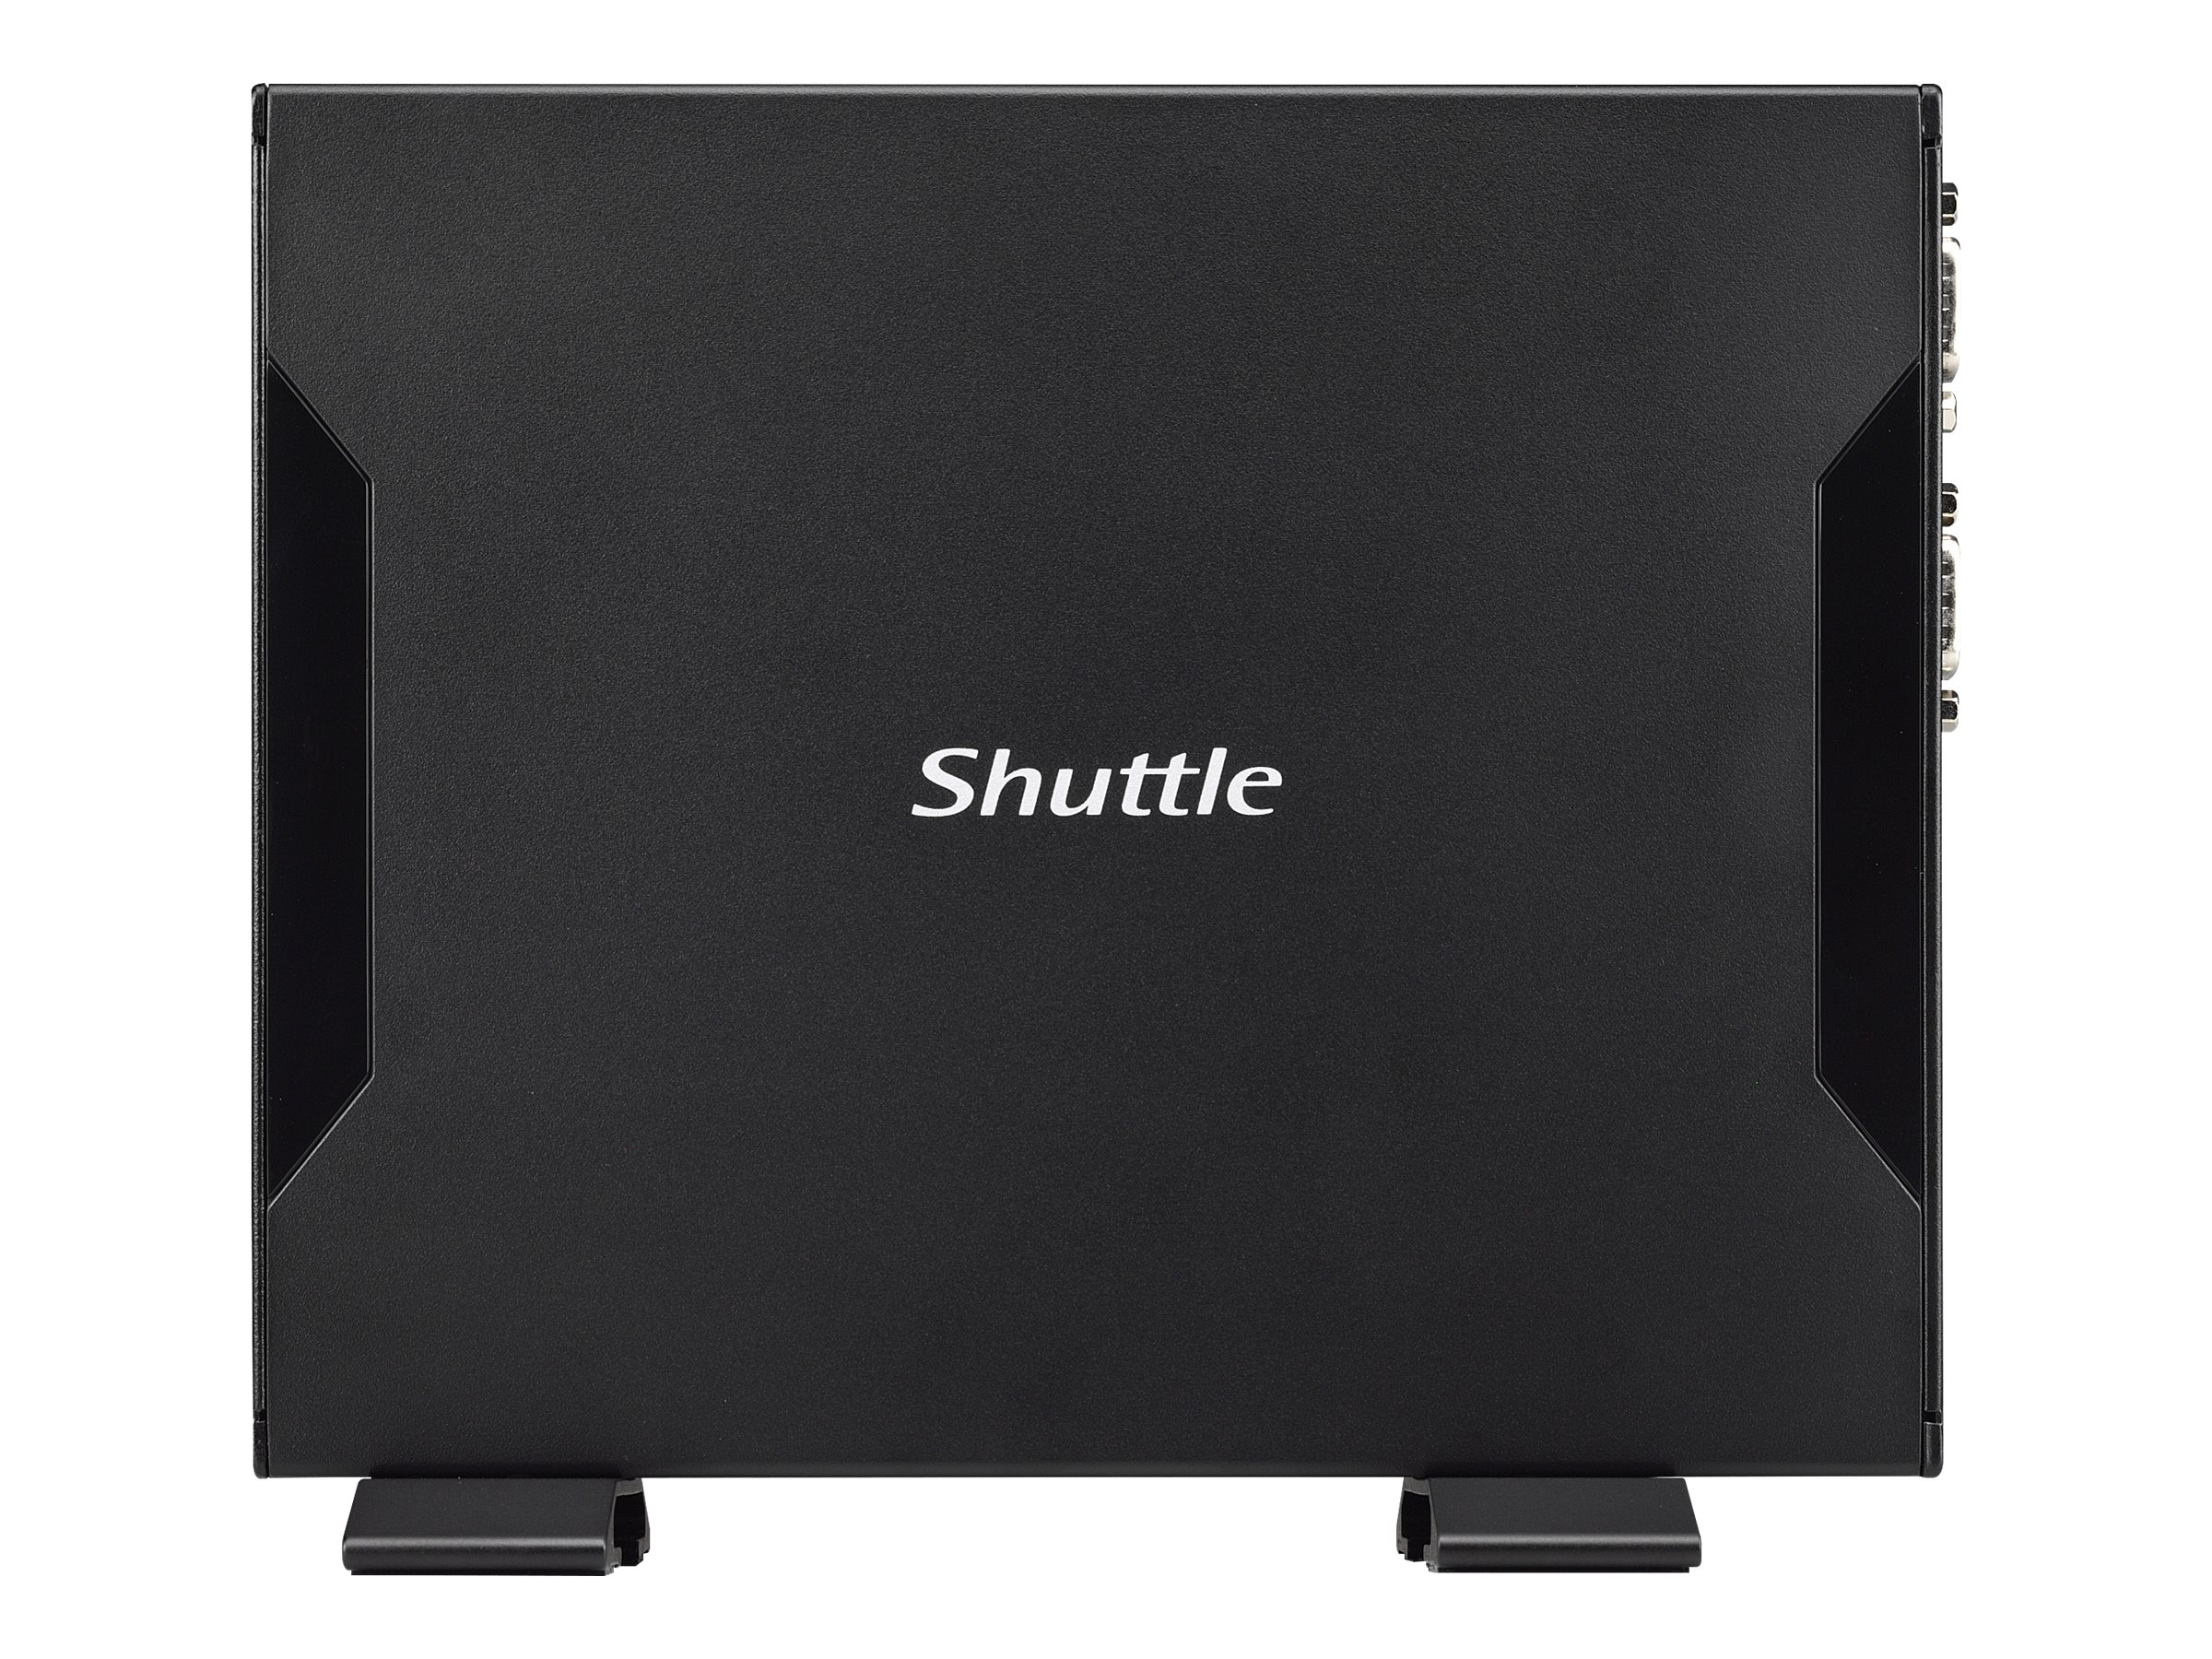 Shuttle Computer Group DS57UW10 Image 6